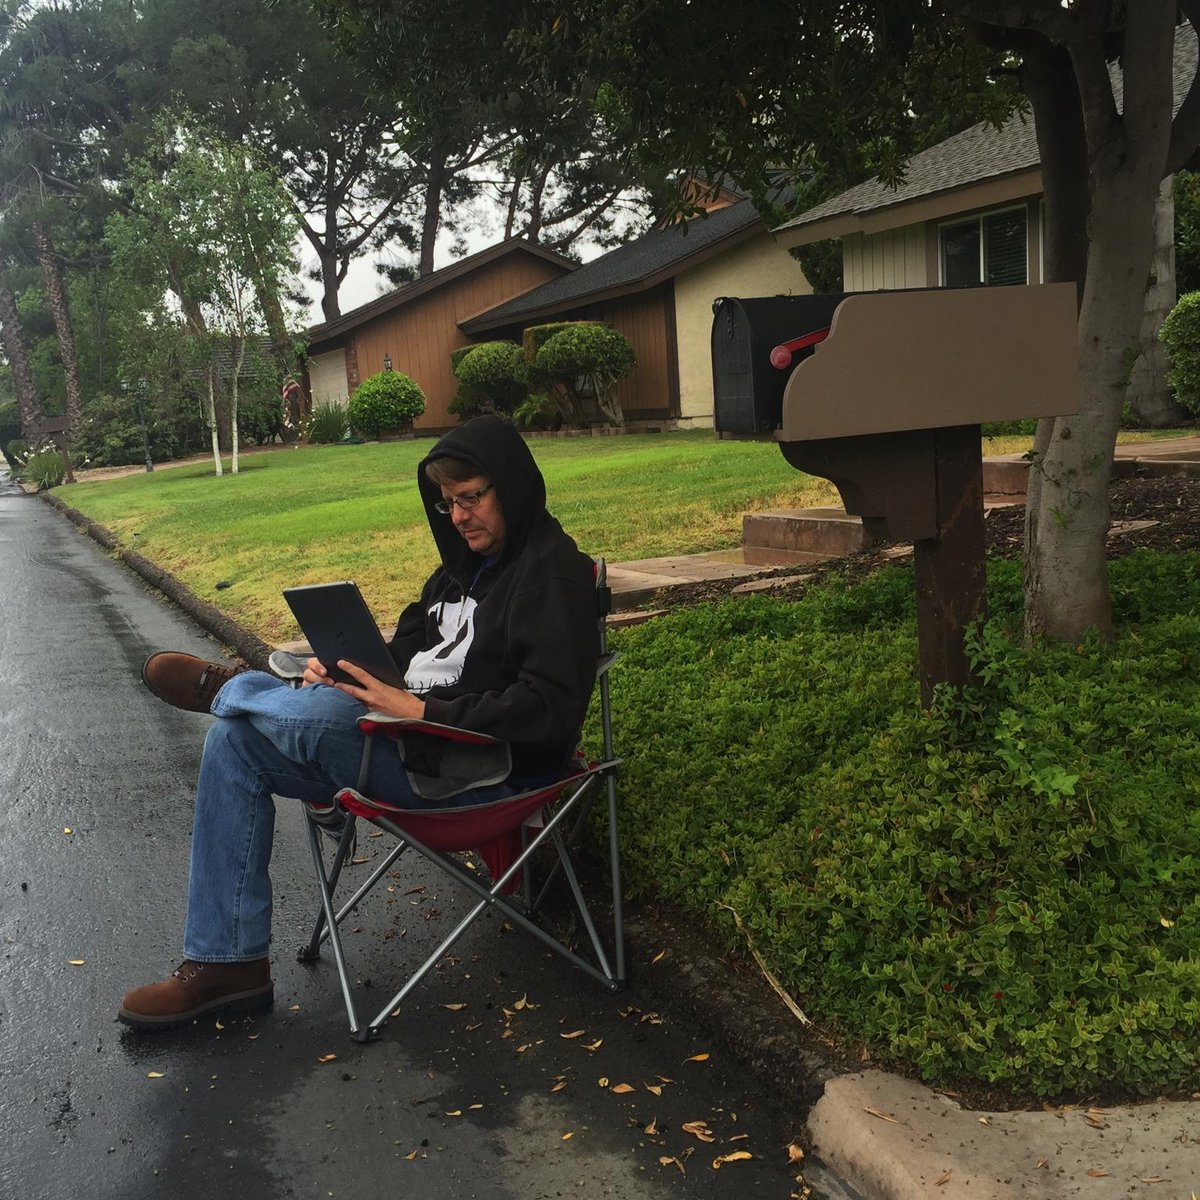 Camped out at this location to be the first to get an Apple Watch. #notthesame #AppleWatch http://t.co/bawzlRtozS